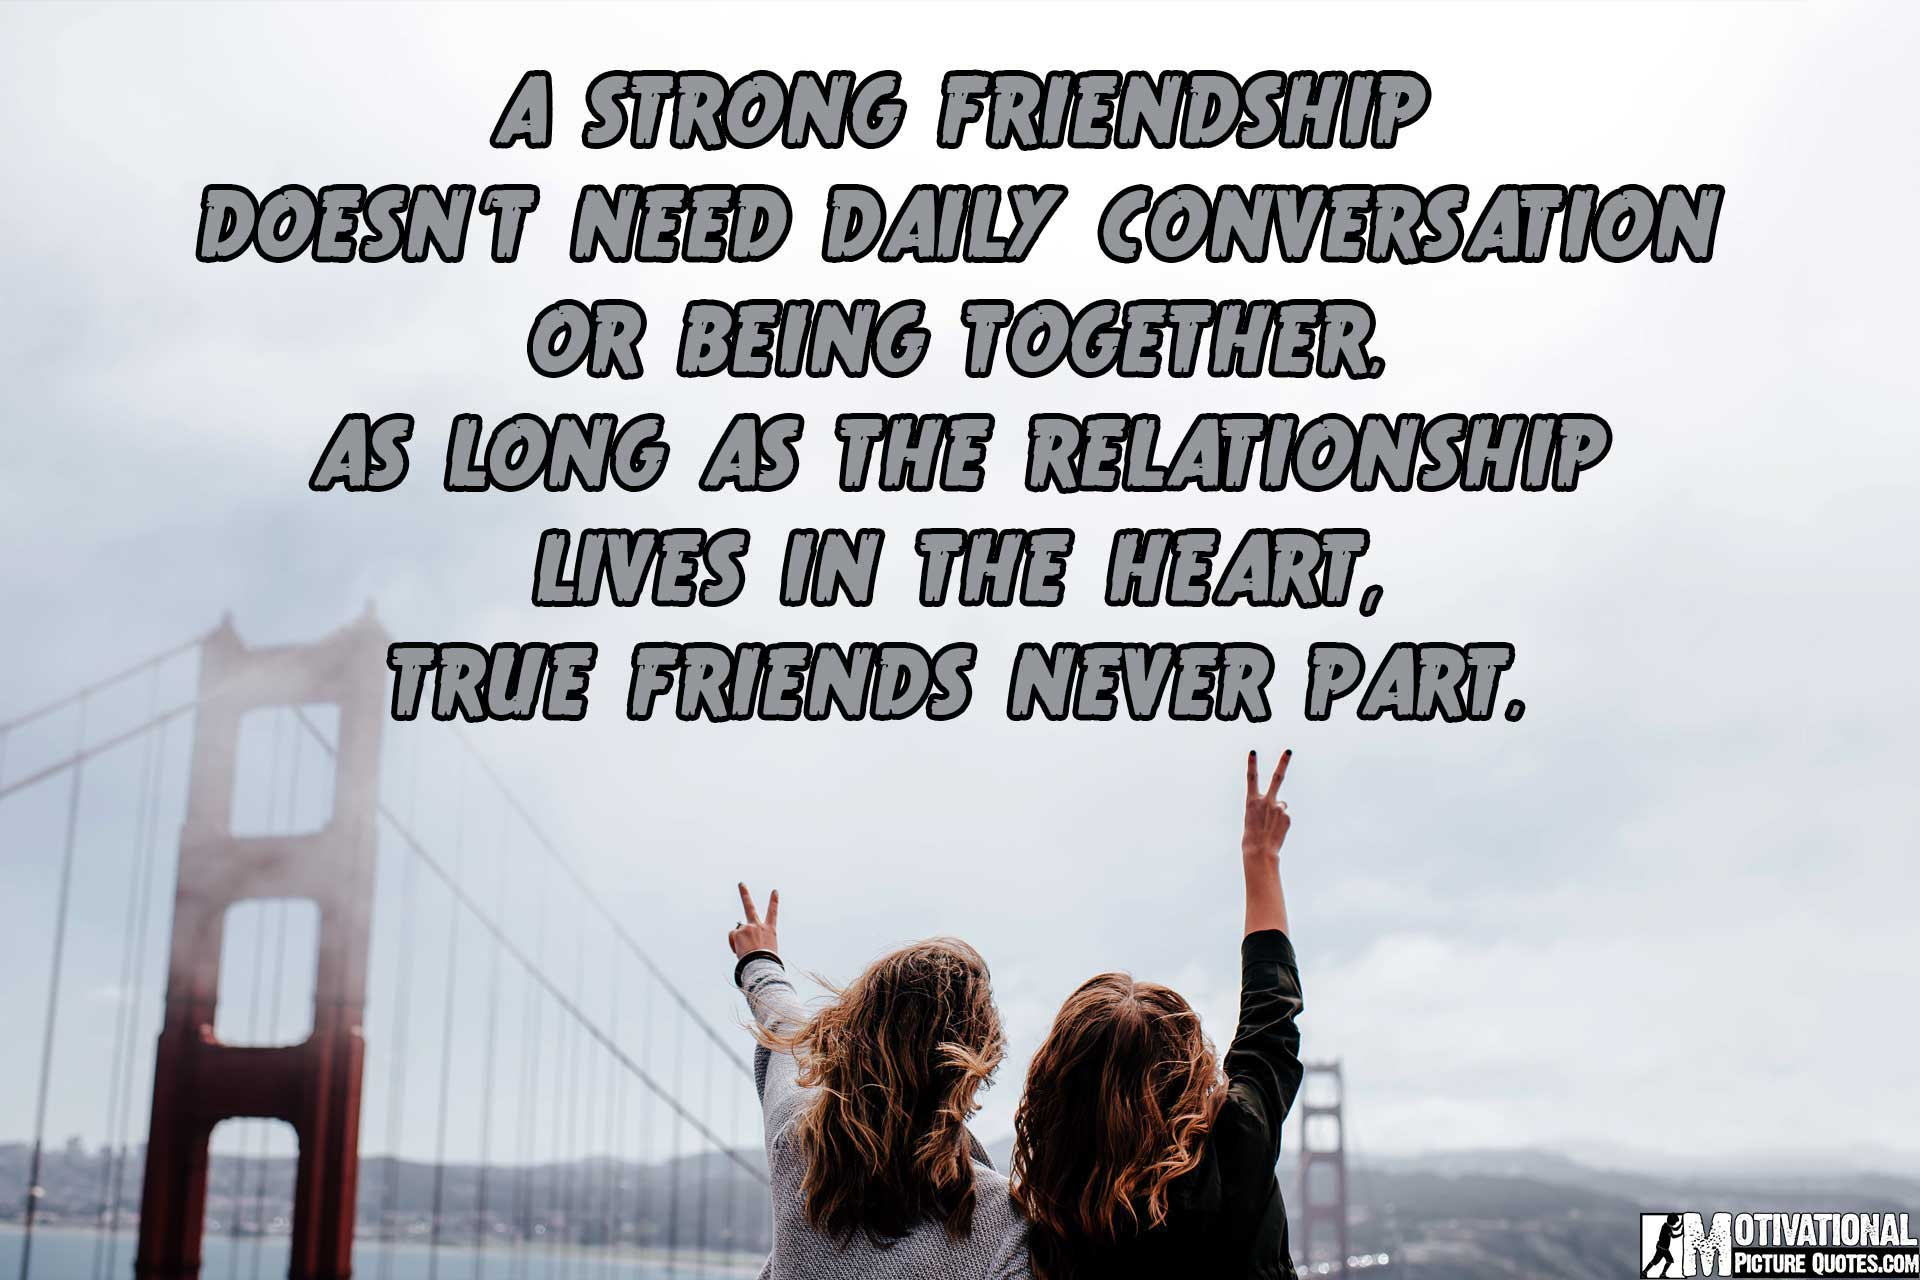 Inspiring Quotes About Friendship 25 Inspirational Friendship Quotes Images  Free Download